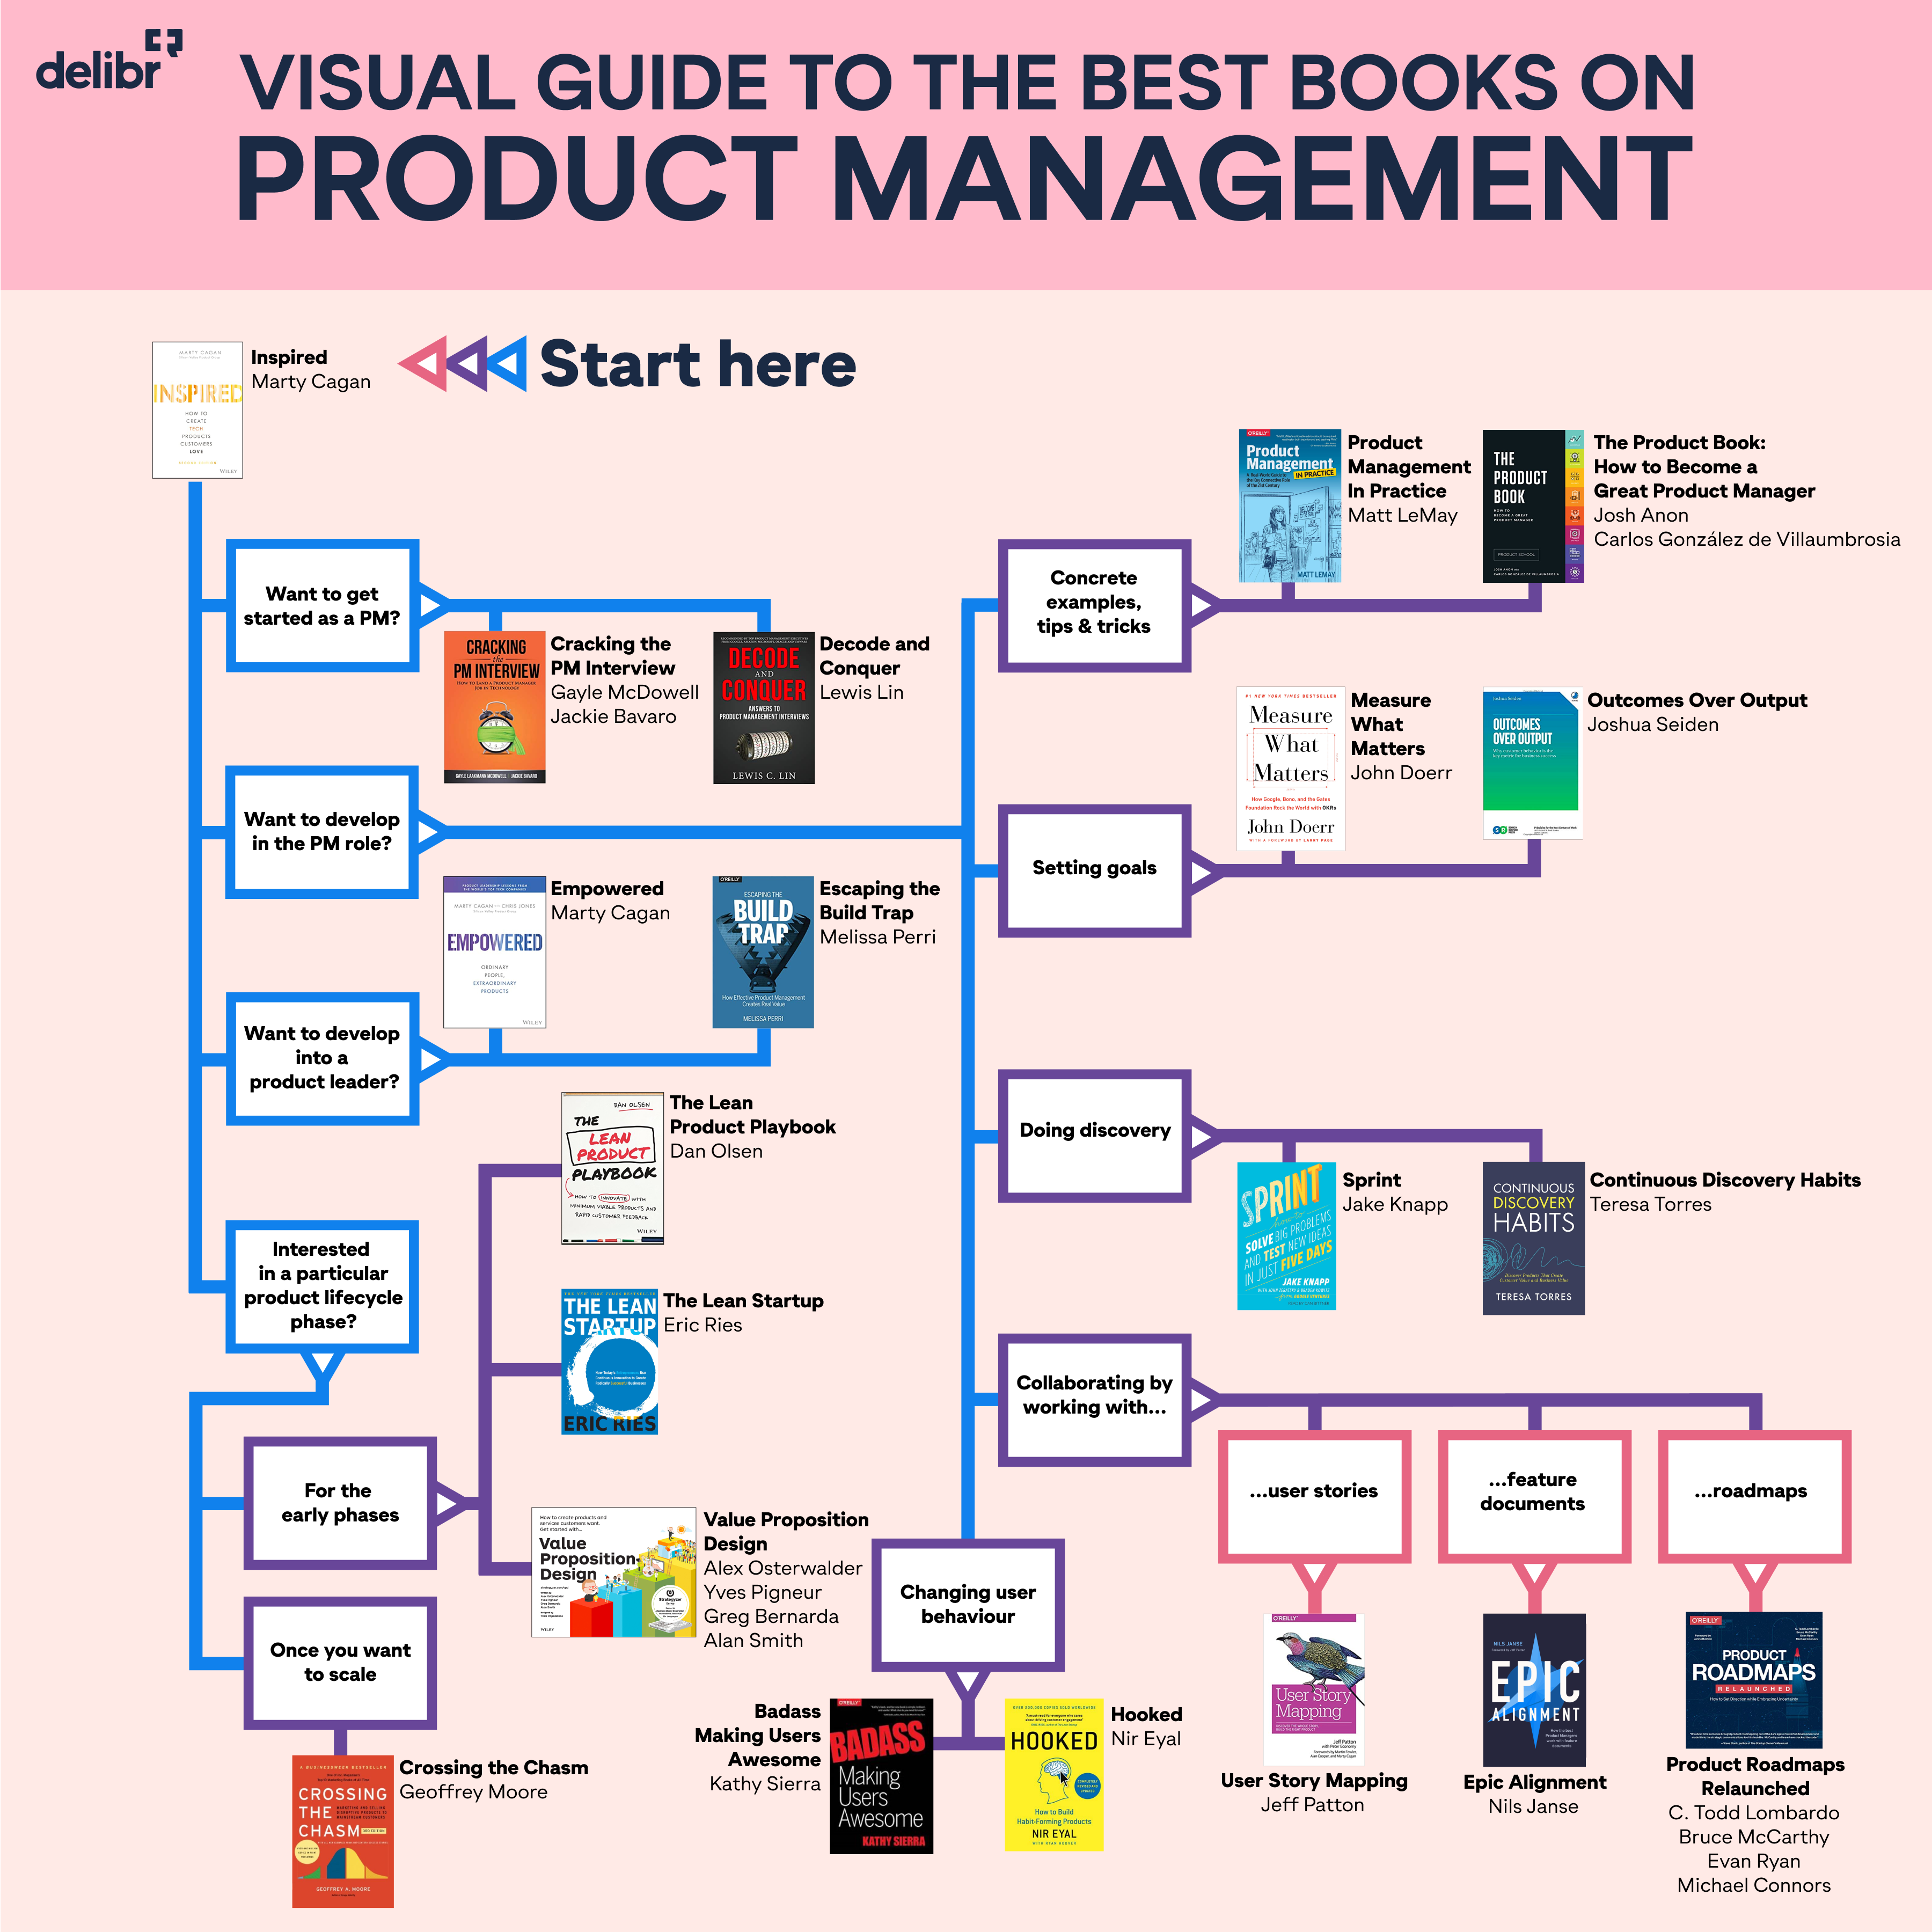 Visual guide of best books on product management